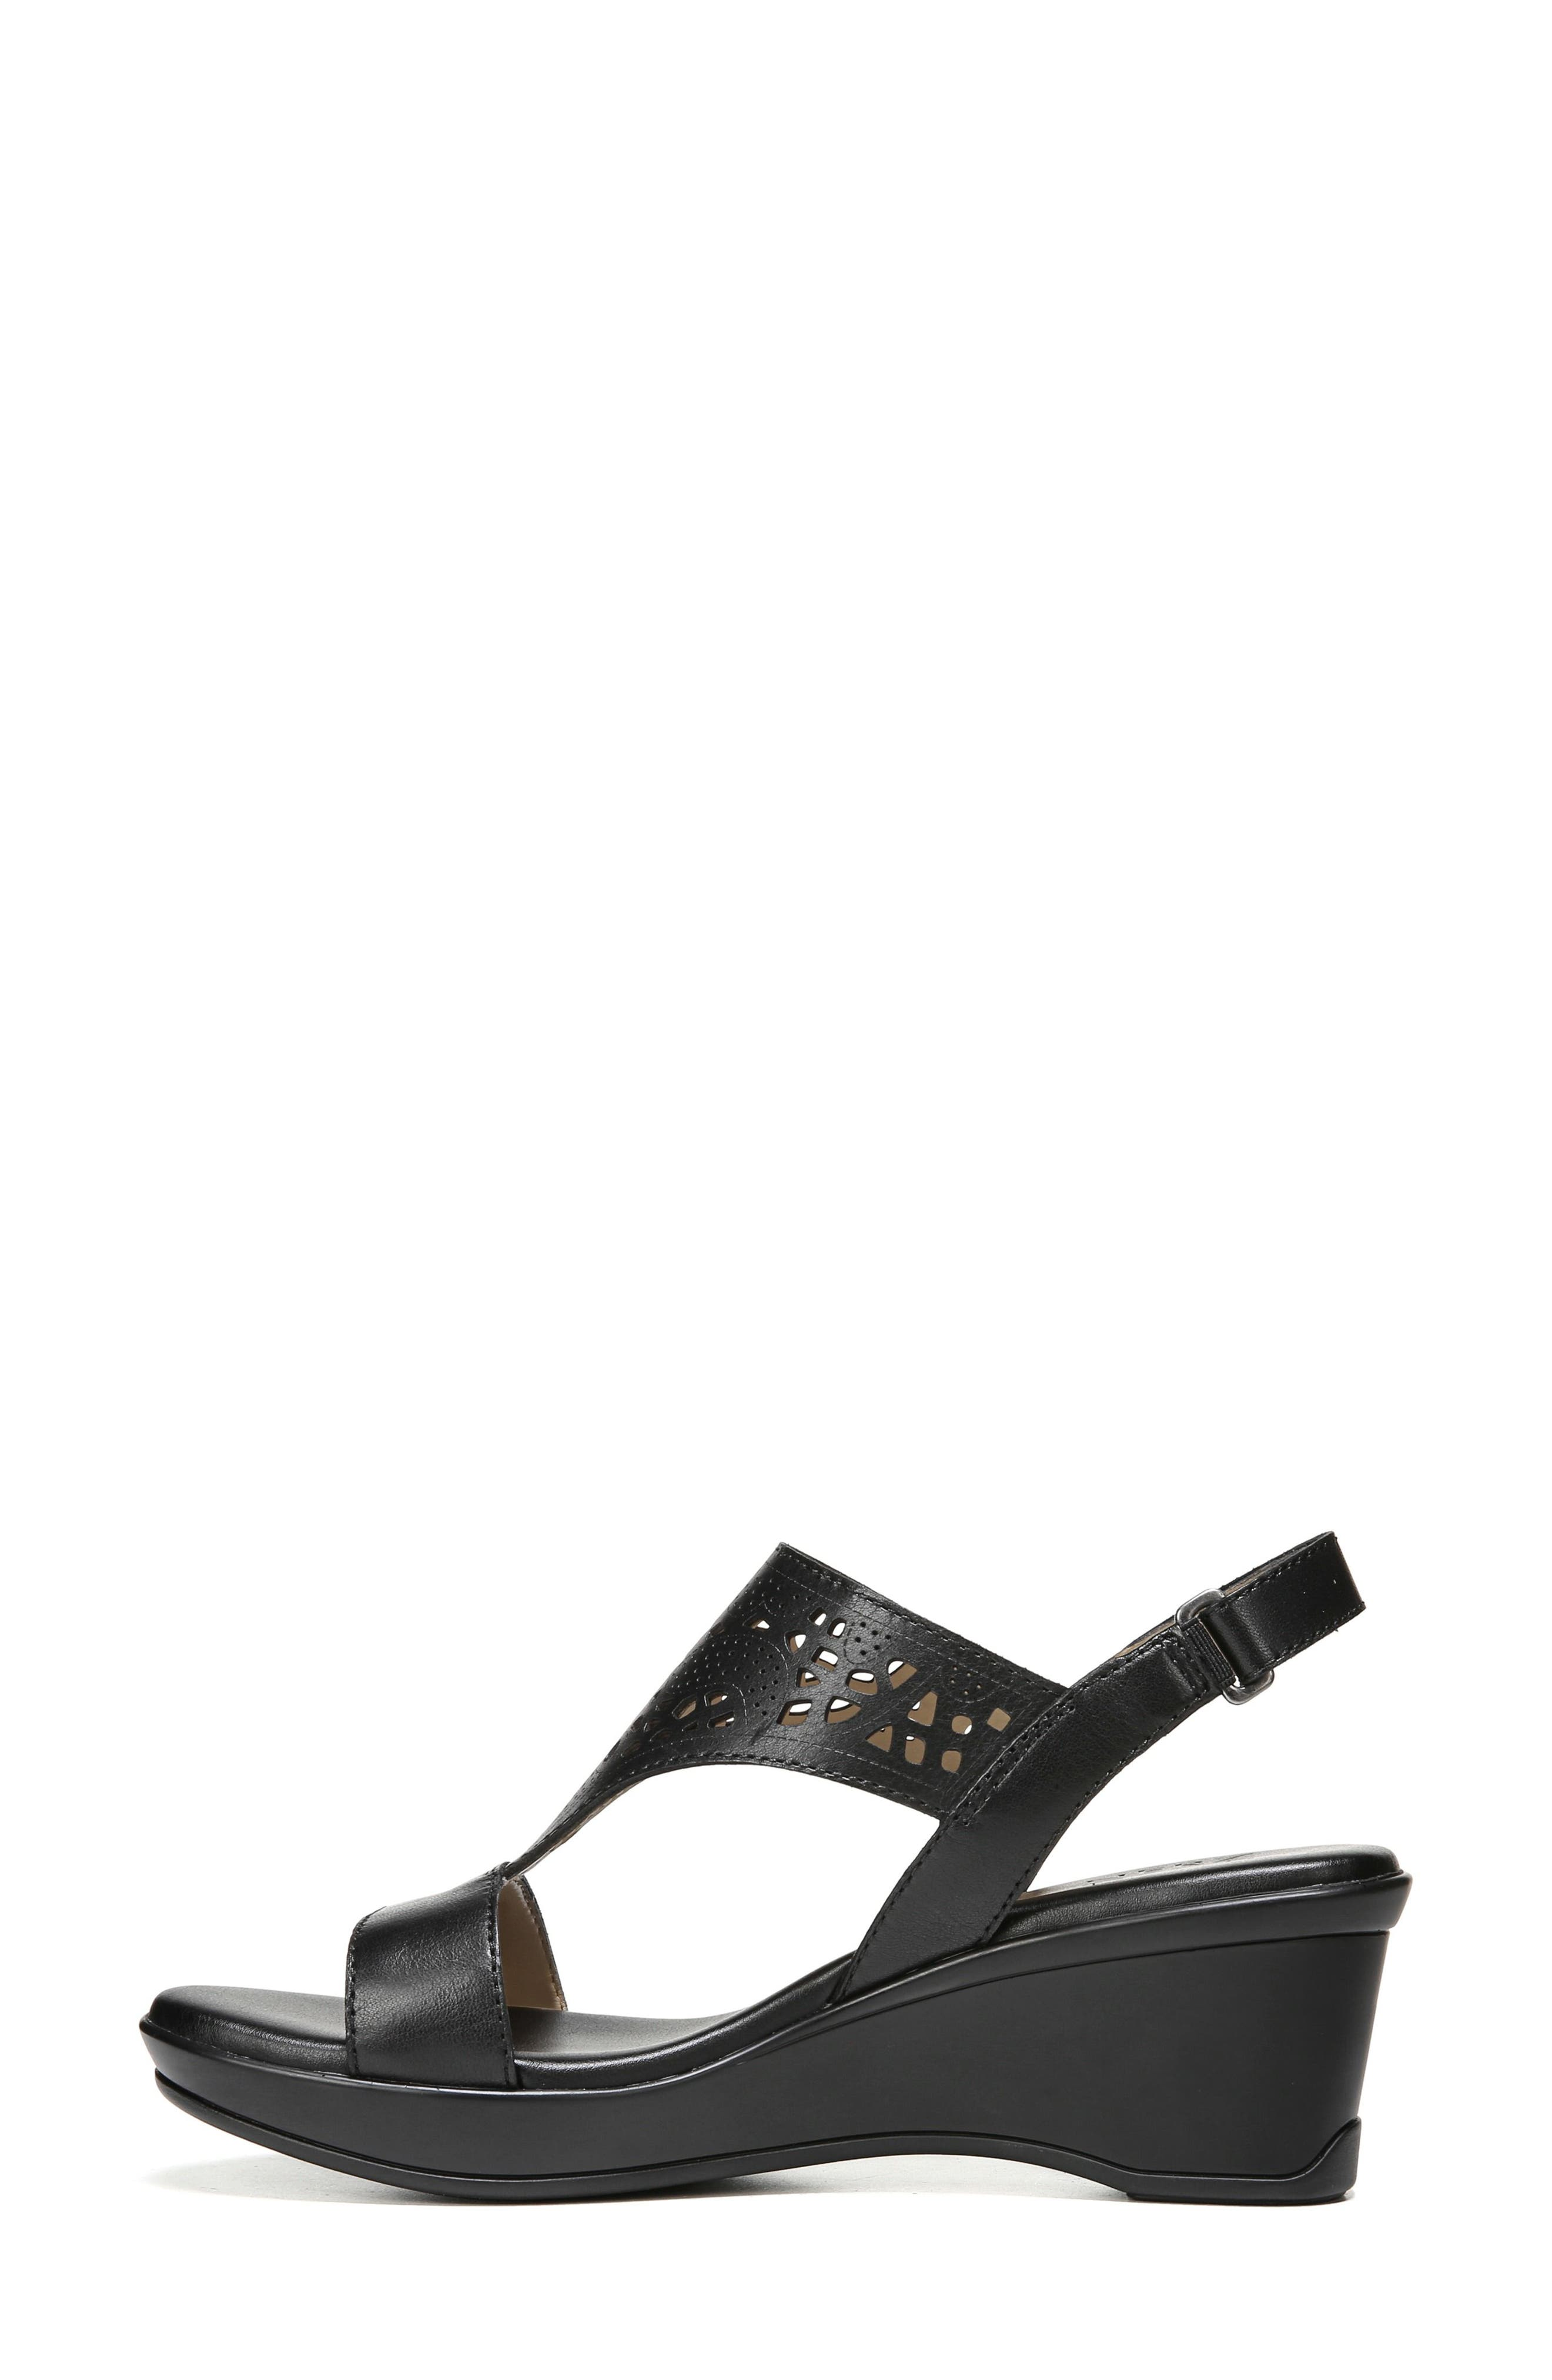 Veda Wedge Sandal,                             Alternate thumbnail 3, color,                             BLACK LEATHER